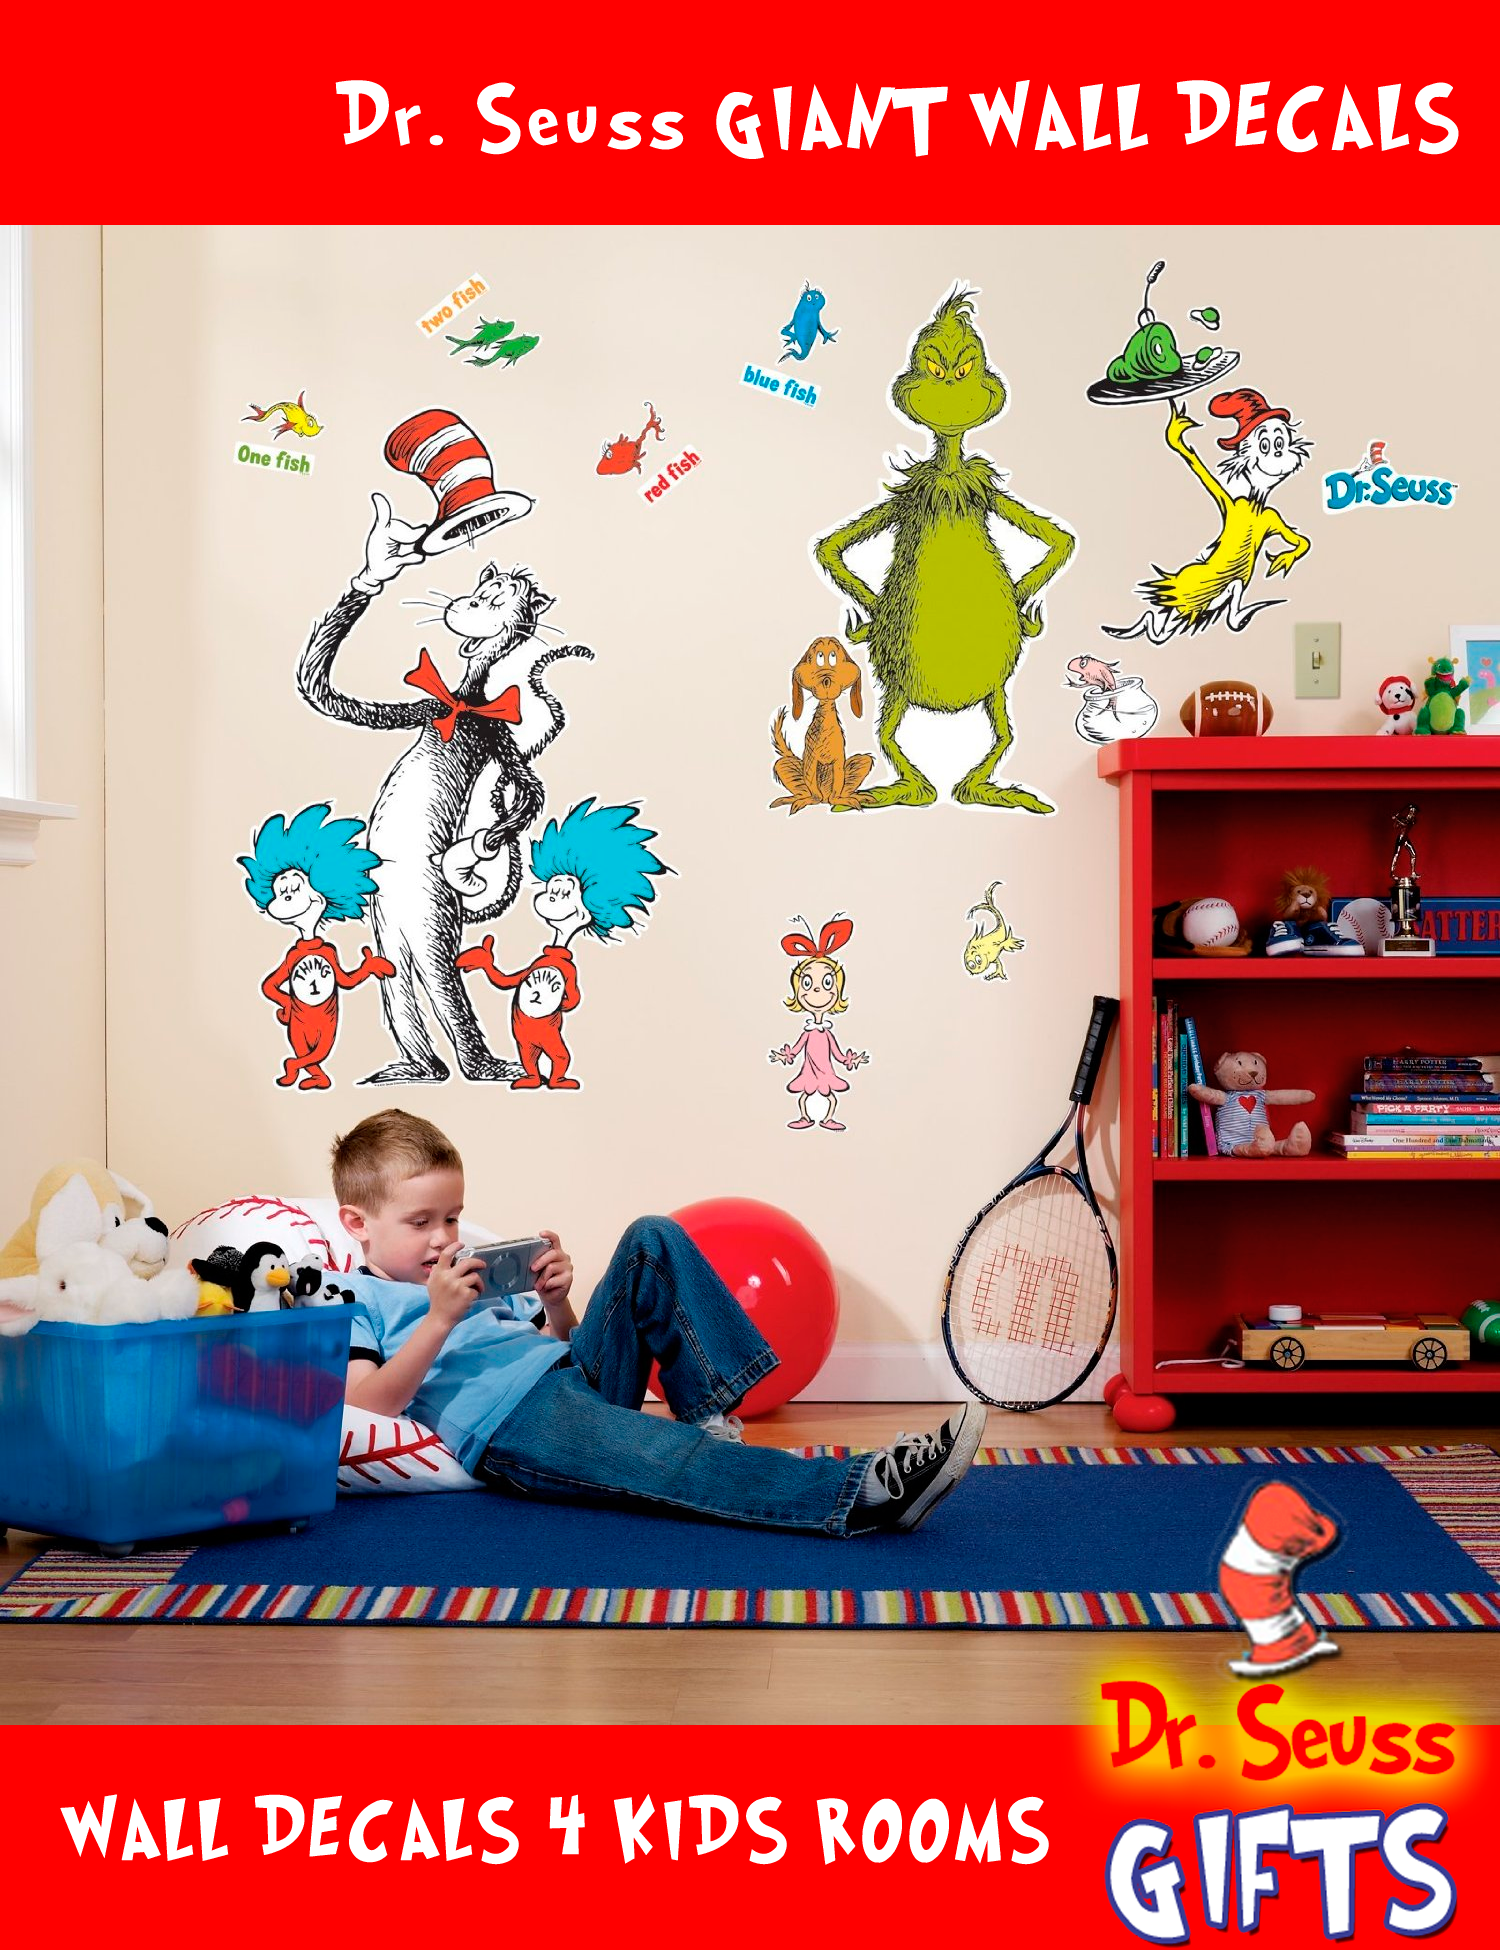 Giant Wall Decals are great and so inexpensive. Once the baby furniture is home and are properly decorated in the nursery room, start visualizing how you can place your Giant Wall Decals. It will be best to arrange them in a manner where they kind of tell a story, like a famous scene or your favorite part of the story. #Dr. #Seuss #Wall #Decals #Gifts #Kids #Decorations #Giant #Grinch #Cat #Hat #Thing1 #Thing2  http://goo.gl/LbGtd $39.99